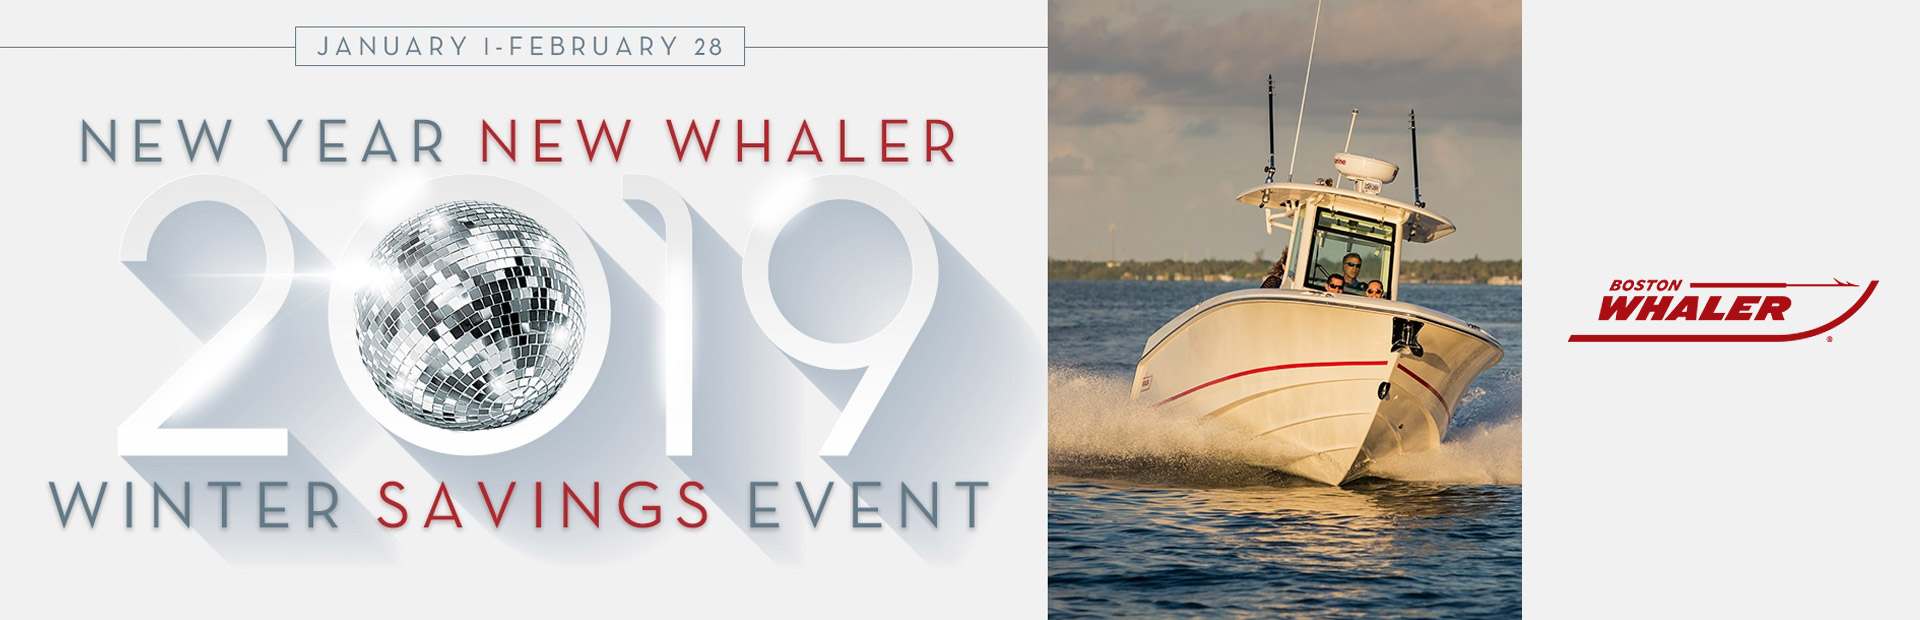 New Year New Whaler